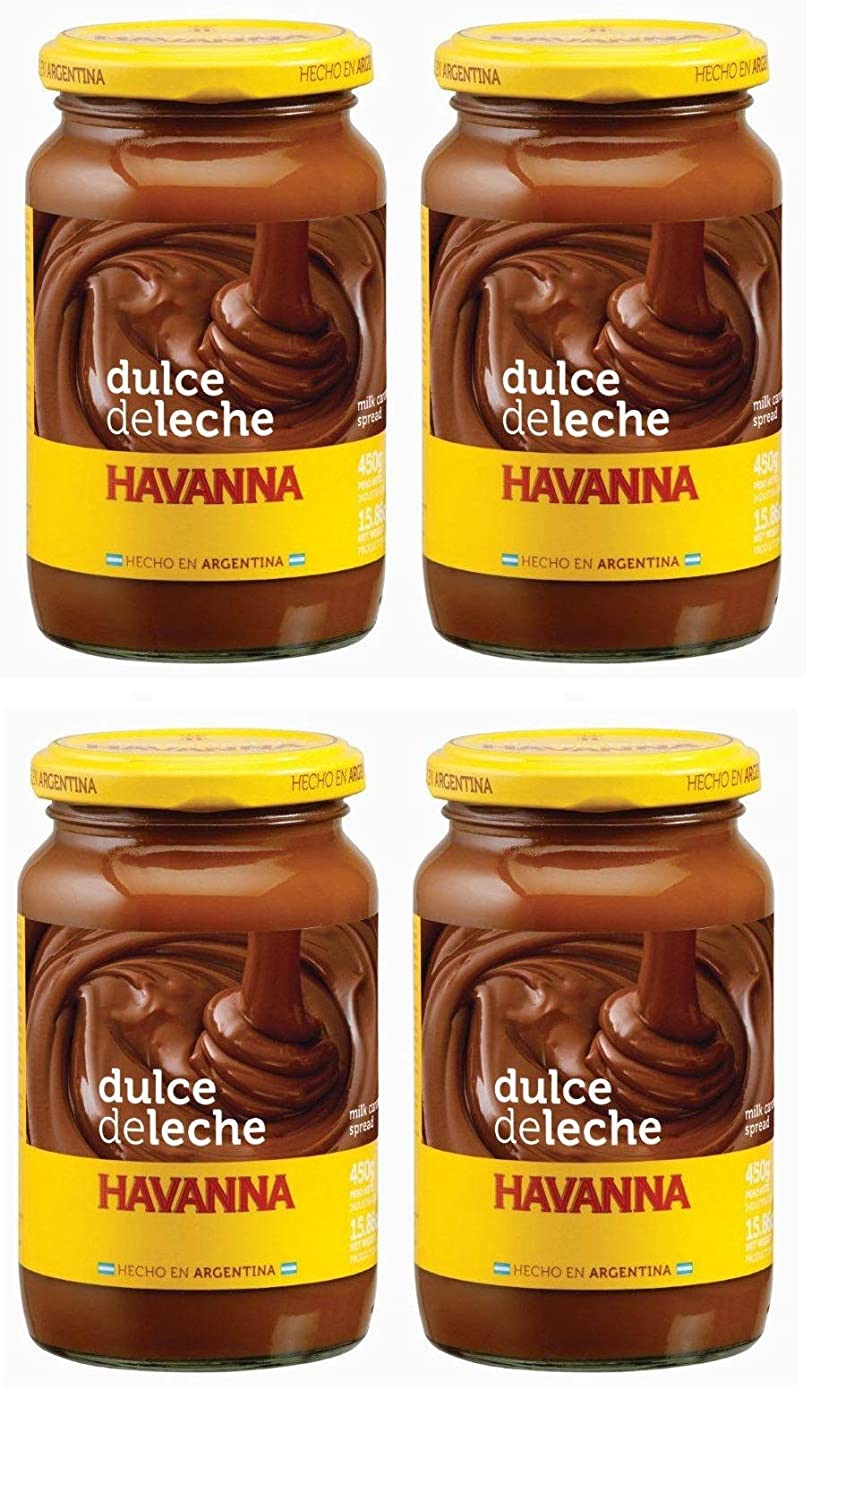 Amazon.com : Havanna Dulce De Leche 450 grs. - 4 Pack/Milk Caramel 15.9 oz. - 4 Pack. : Grocery & Gourmet Food